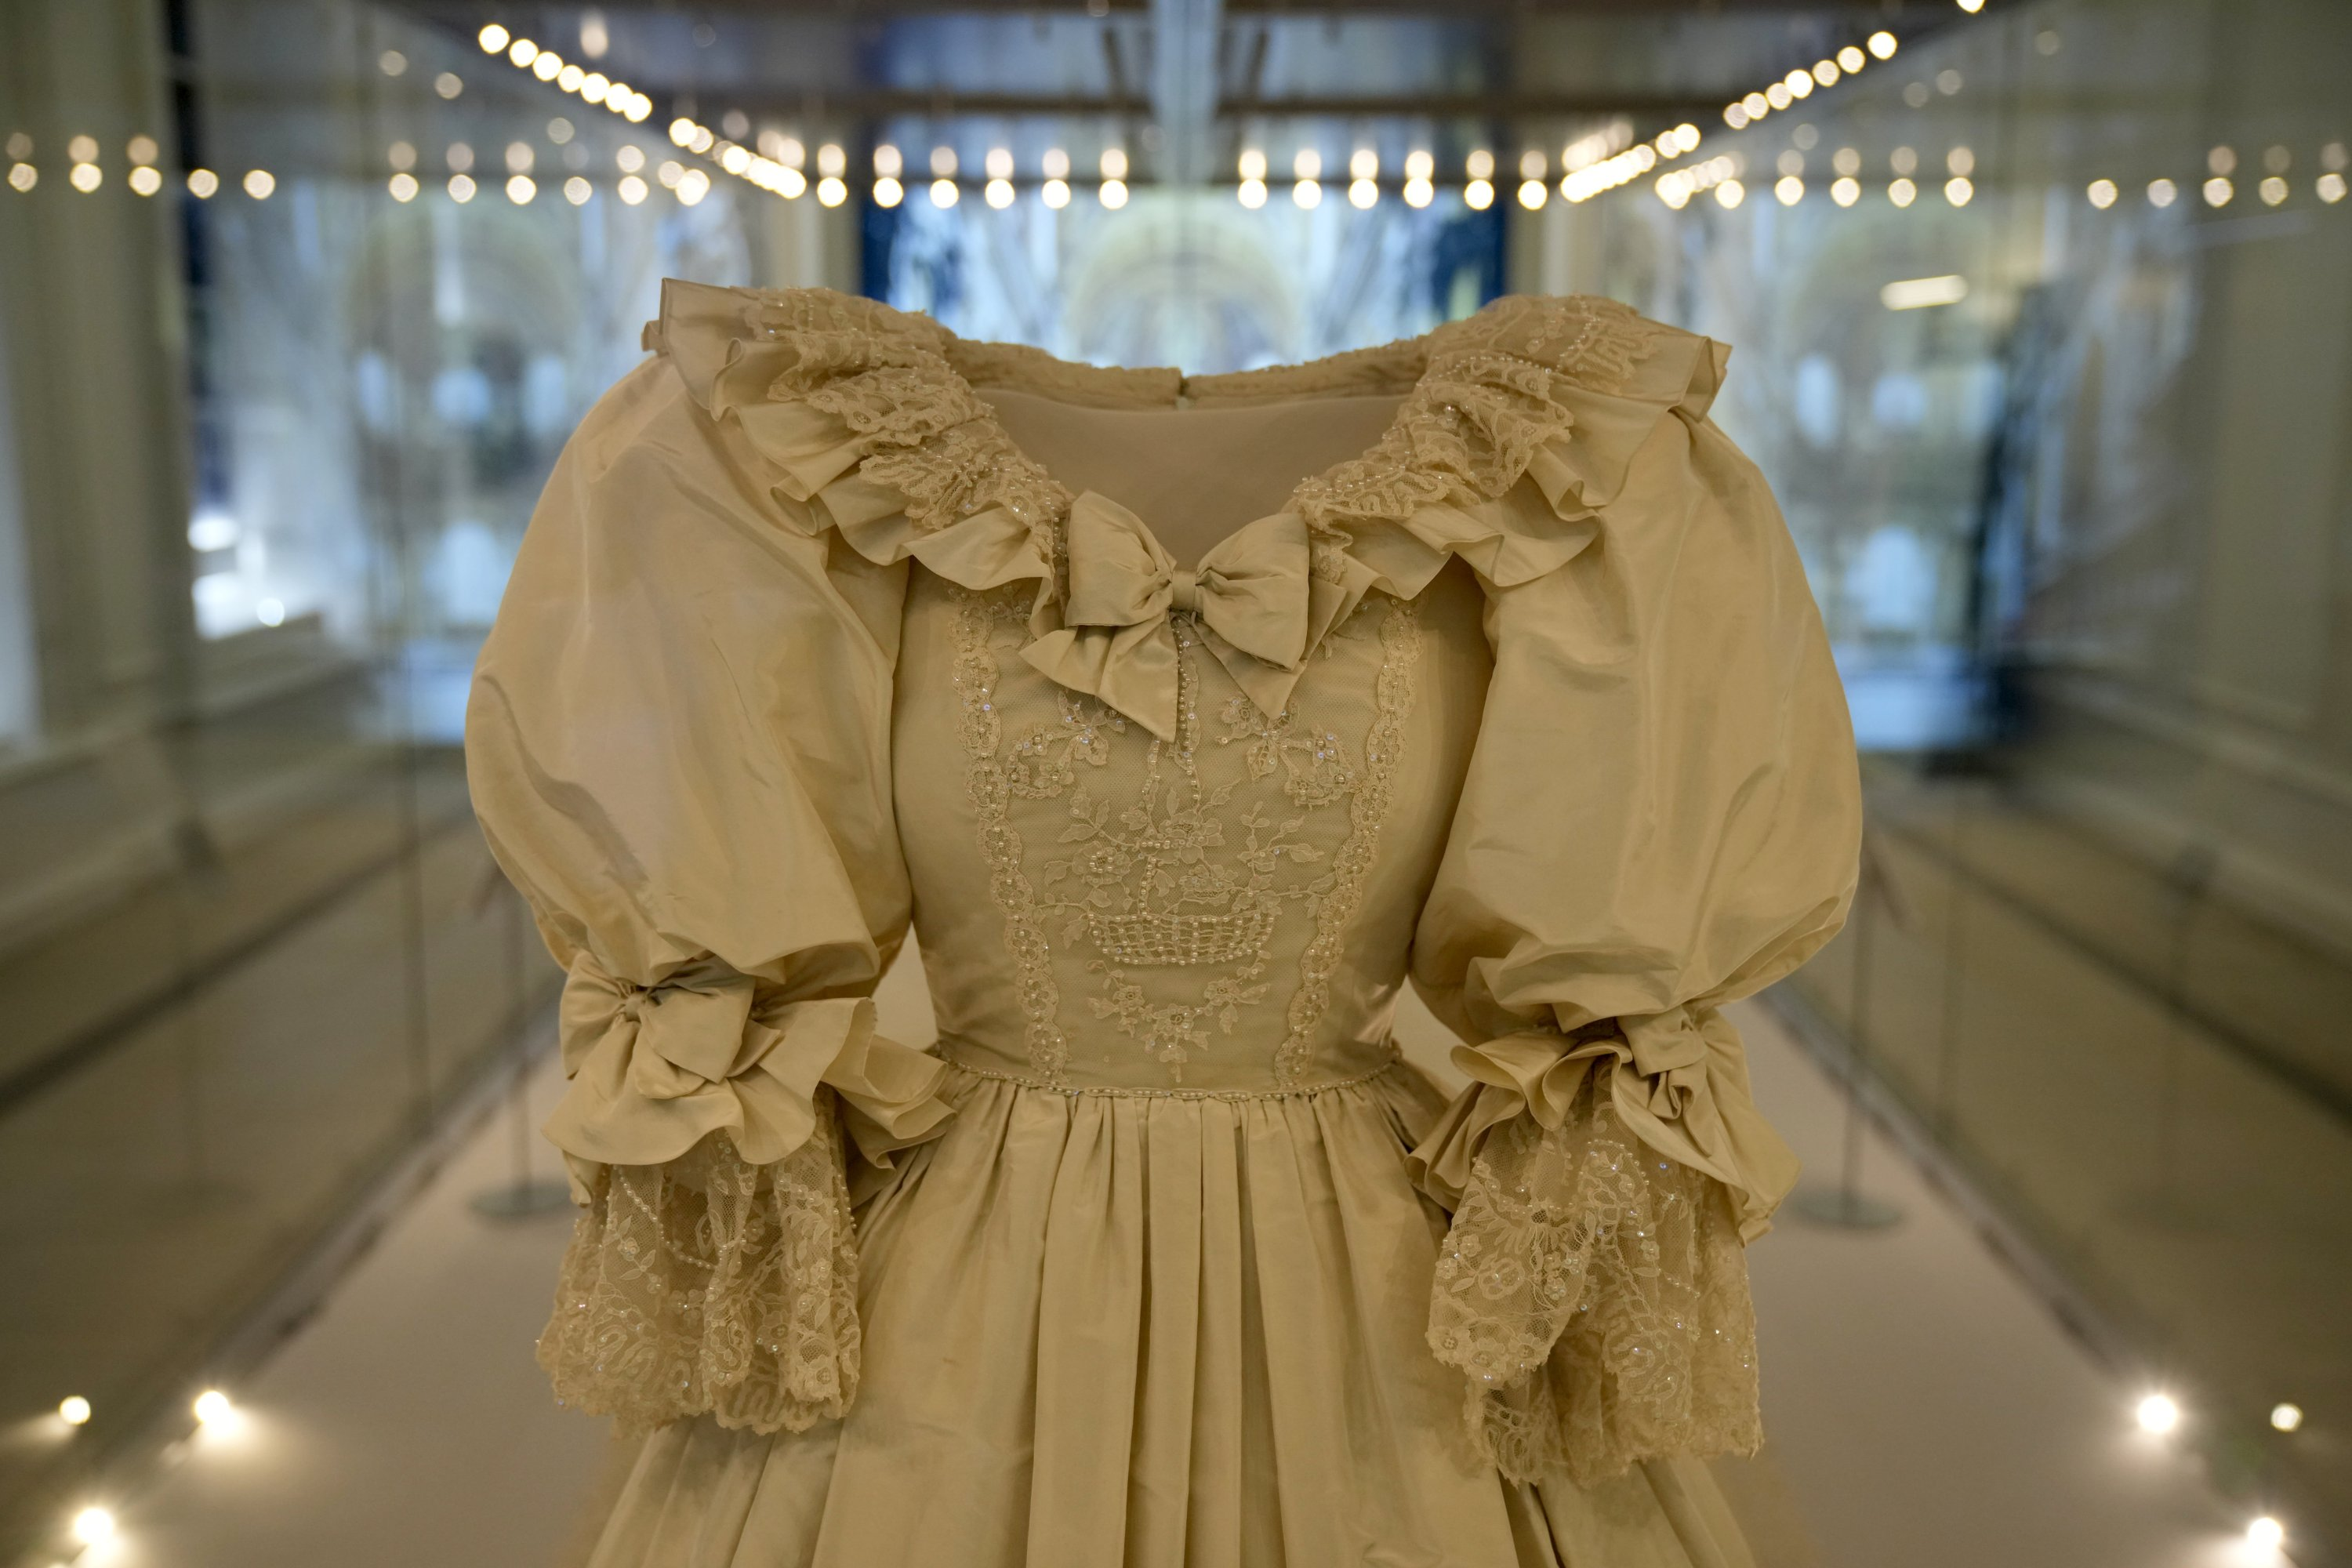 The wedding dress of Britain's Princess Diana is displayed during a media preview for the 'Royal Style in the Making' exhibition at Kensington Palace in London, U.K., June 2, 2021.  (AP Photo)